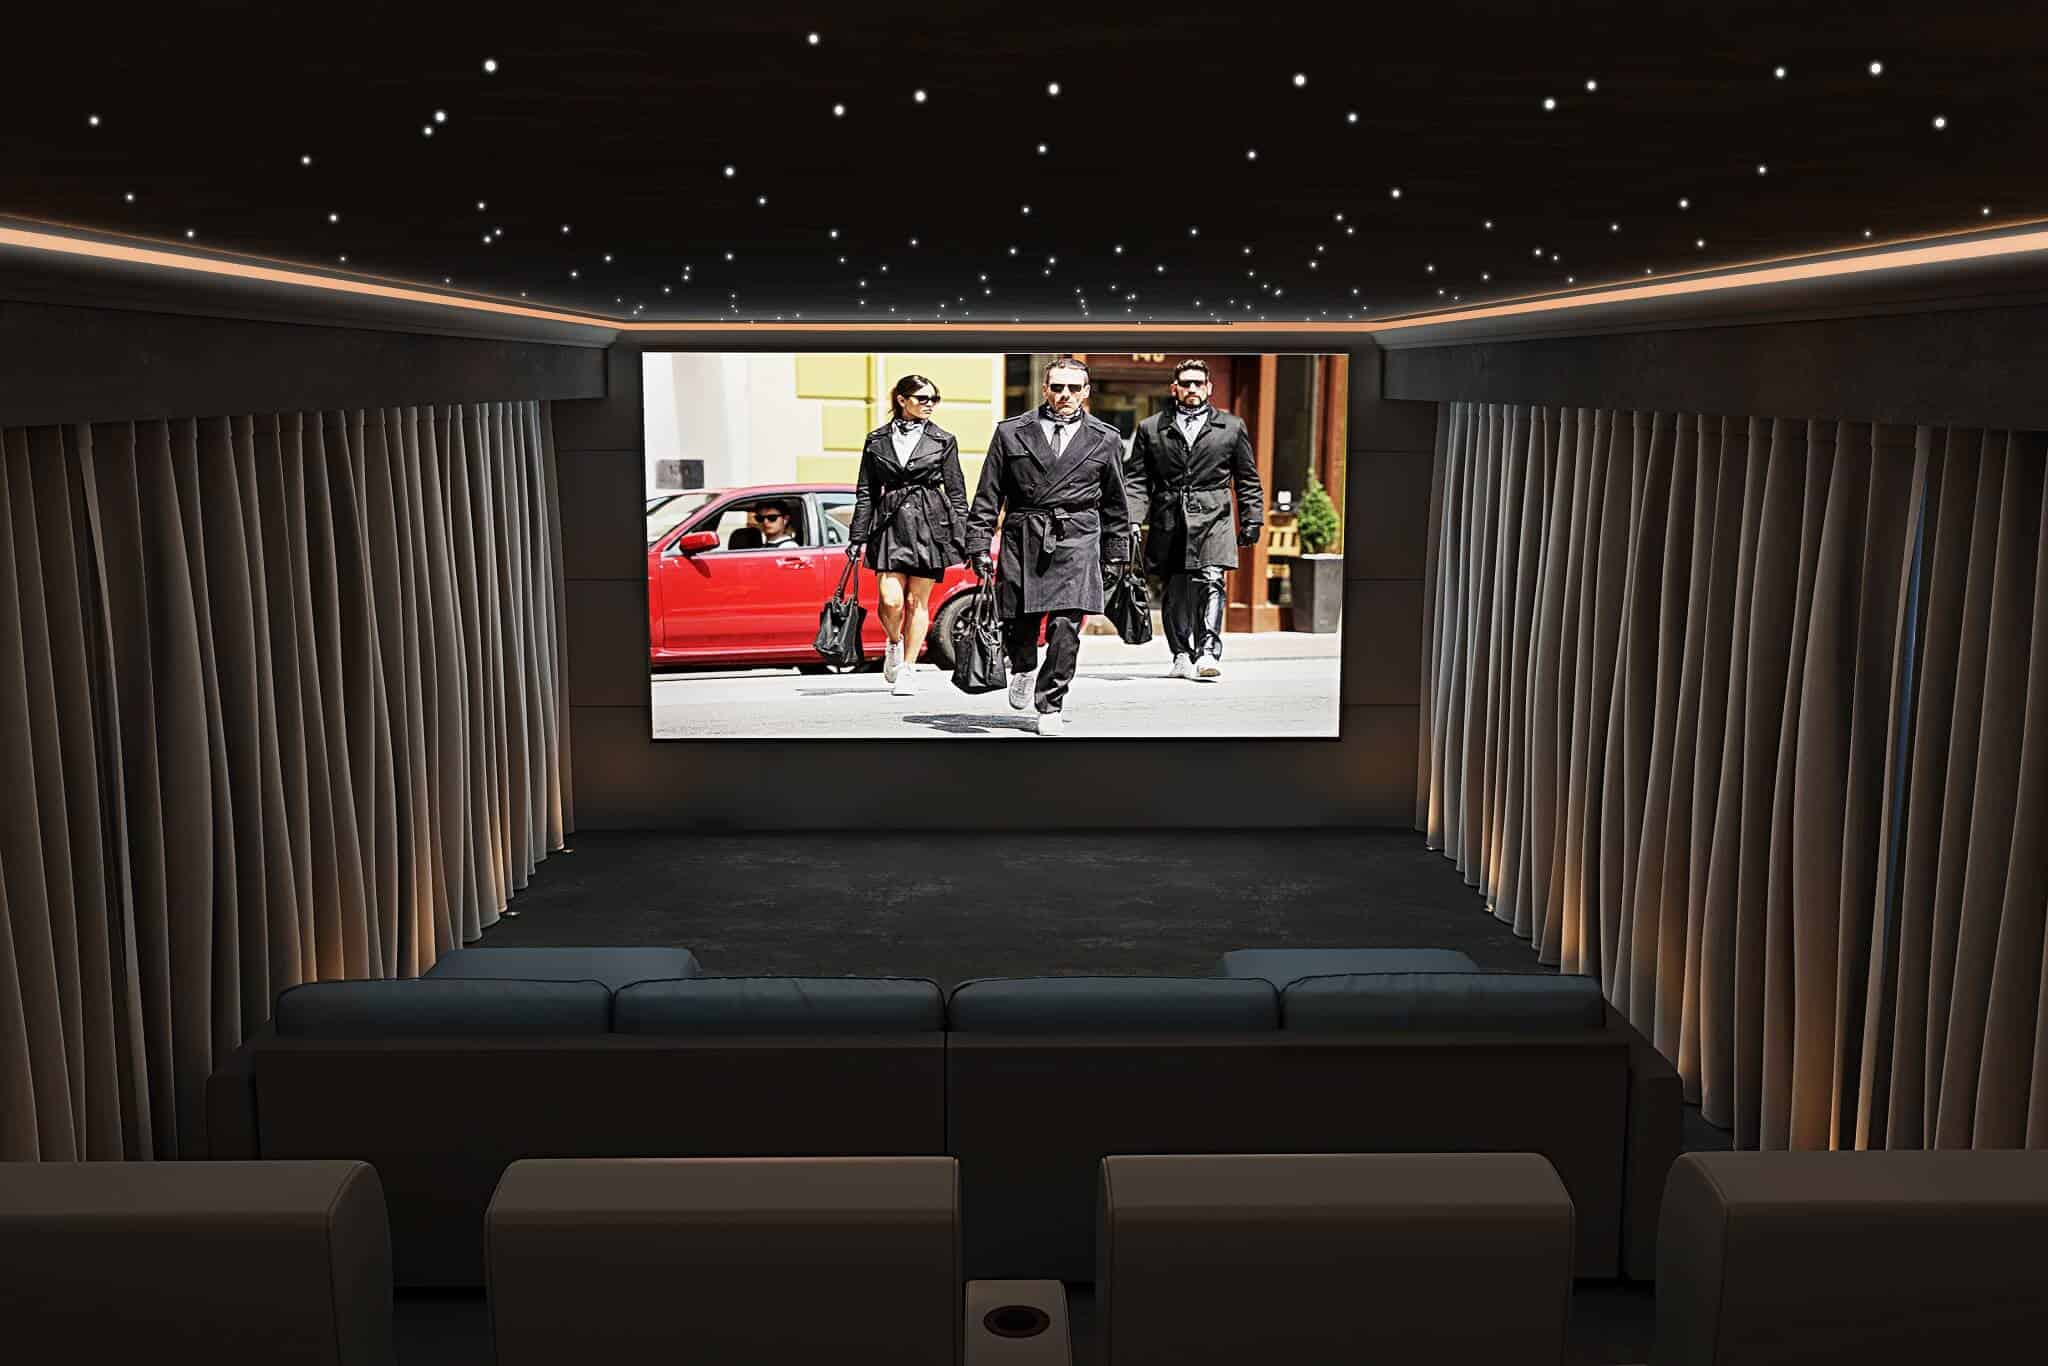 Cheshire Home Cinema Room